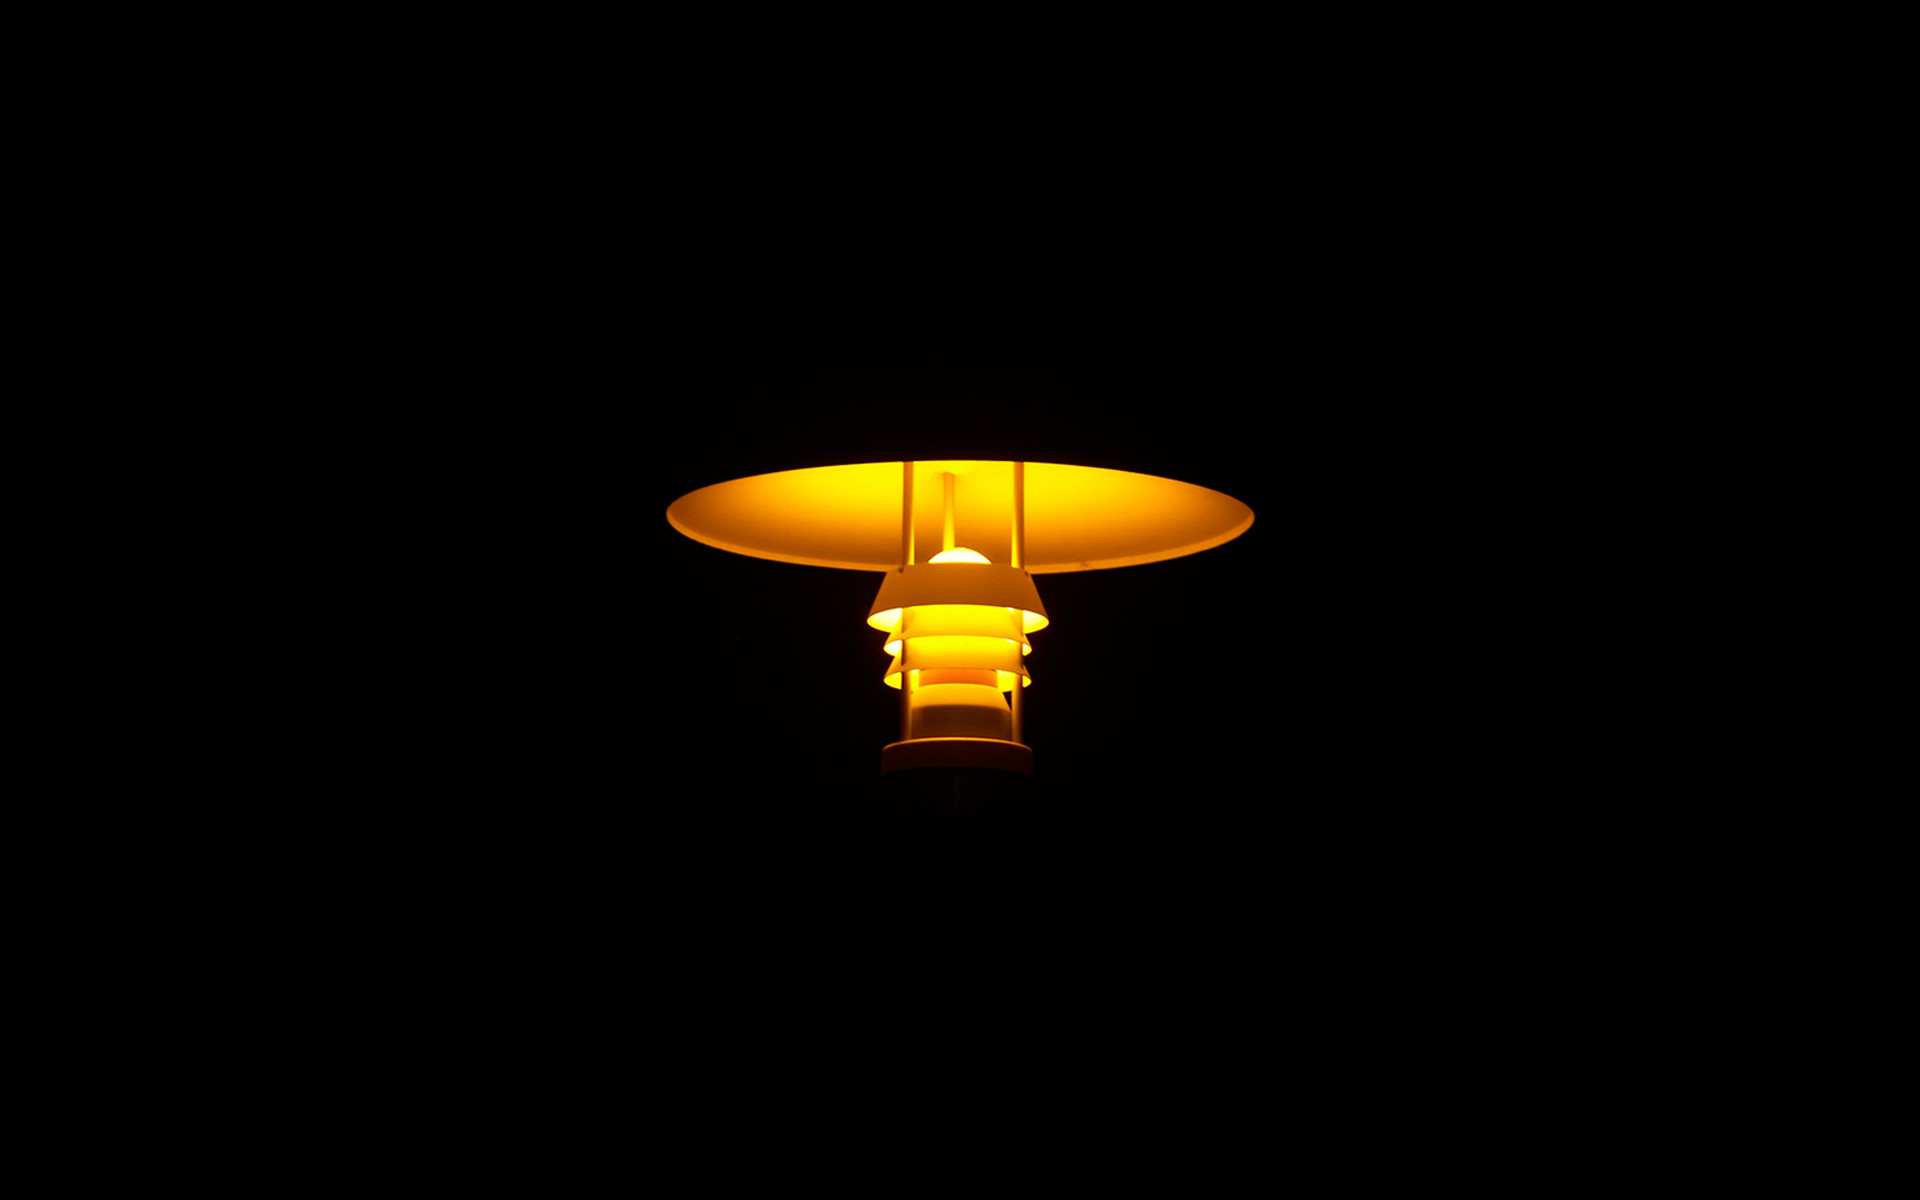 Light Bulb Hd Wallpapers 81 Images